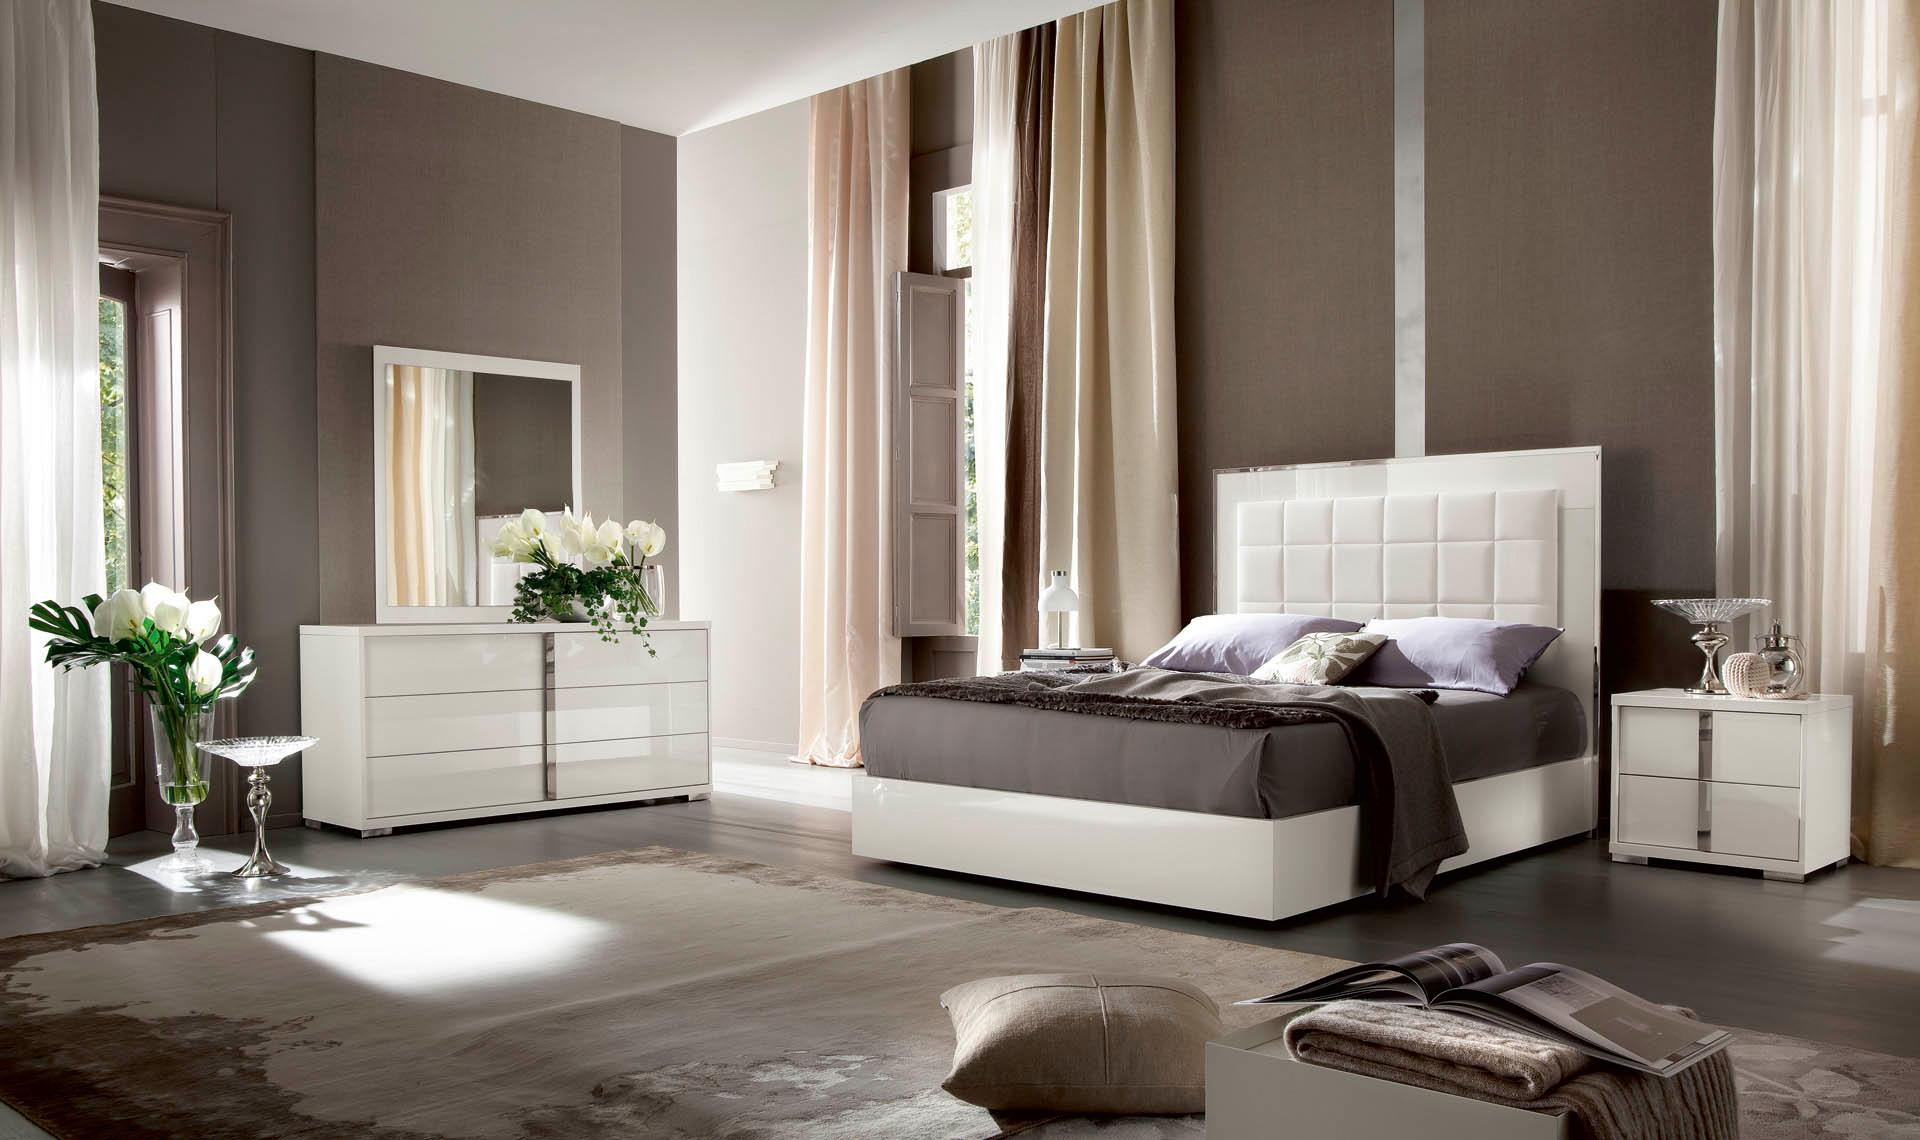 Image of: Modern Bedroom Furniture Set